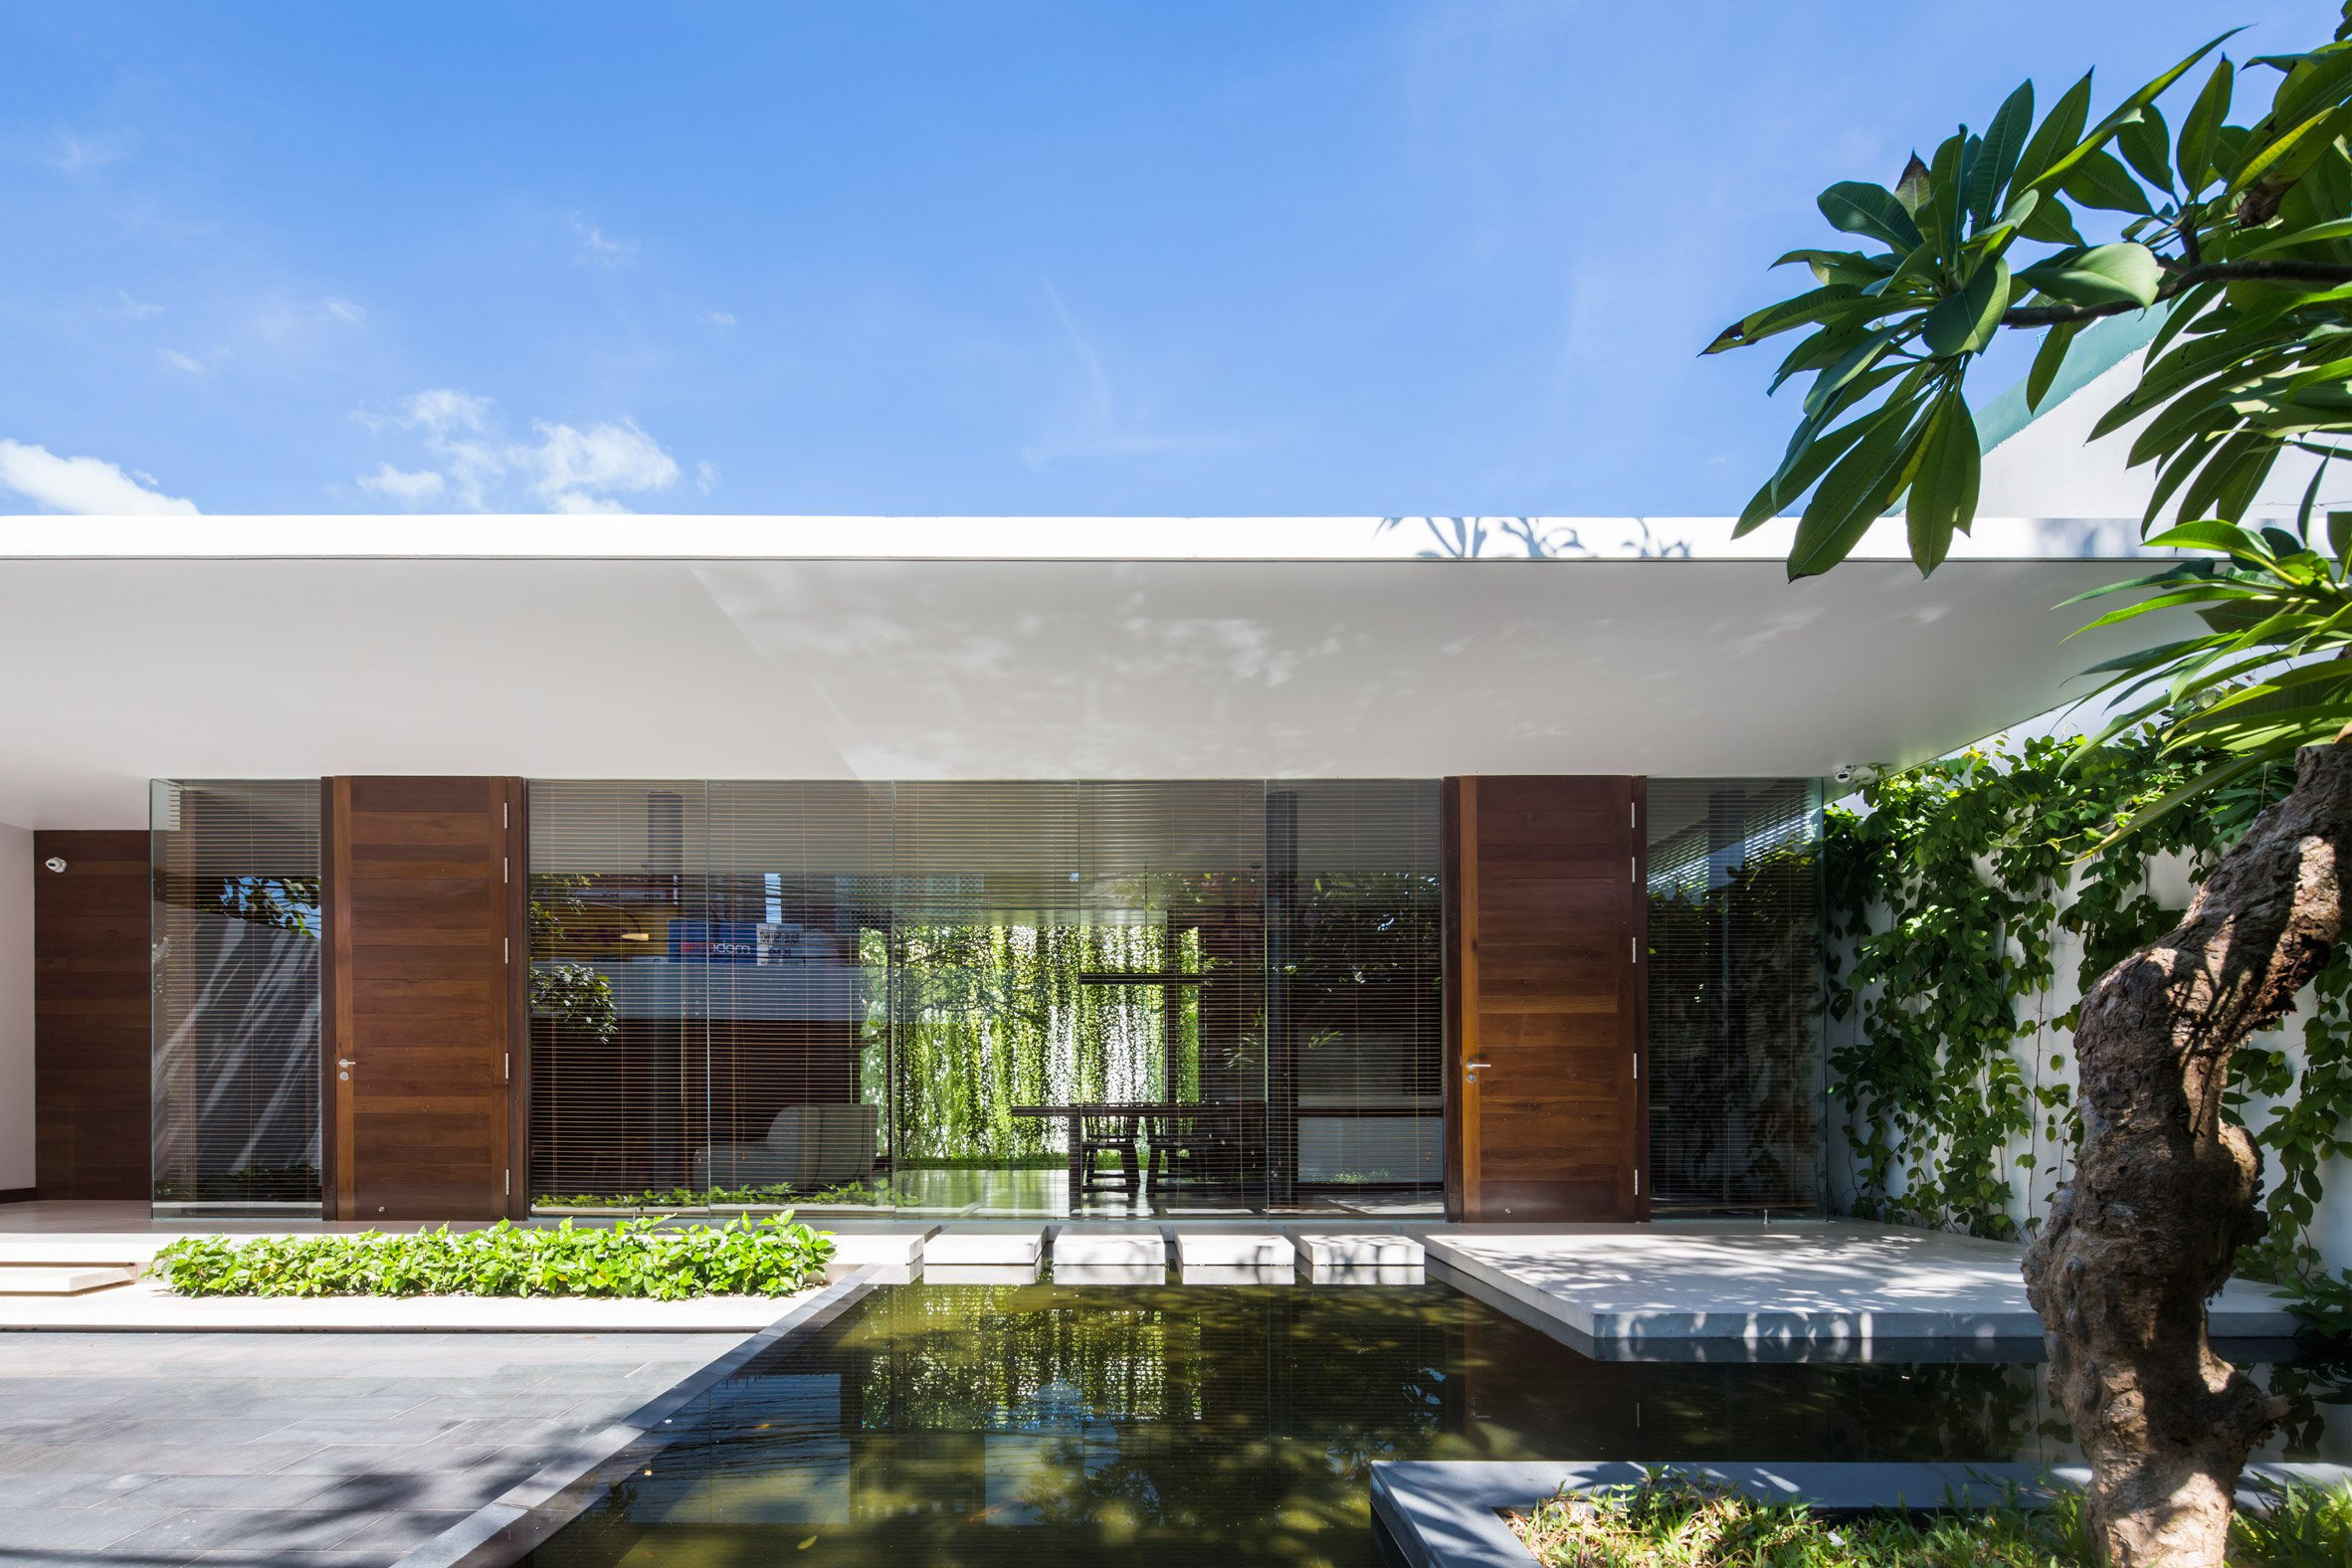 Mia Design Studio Envelopes Vietnam House In Plant Covered Walls And Courtyards Minimal Blogs